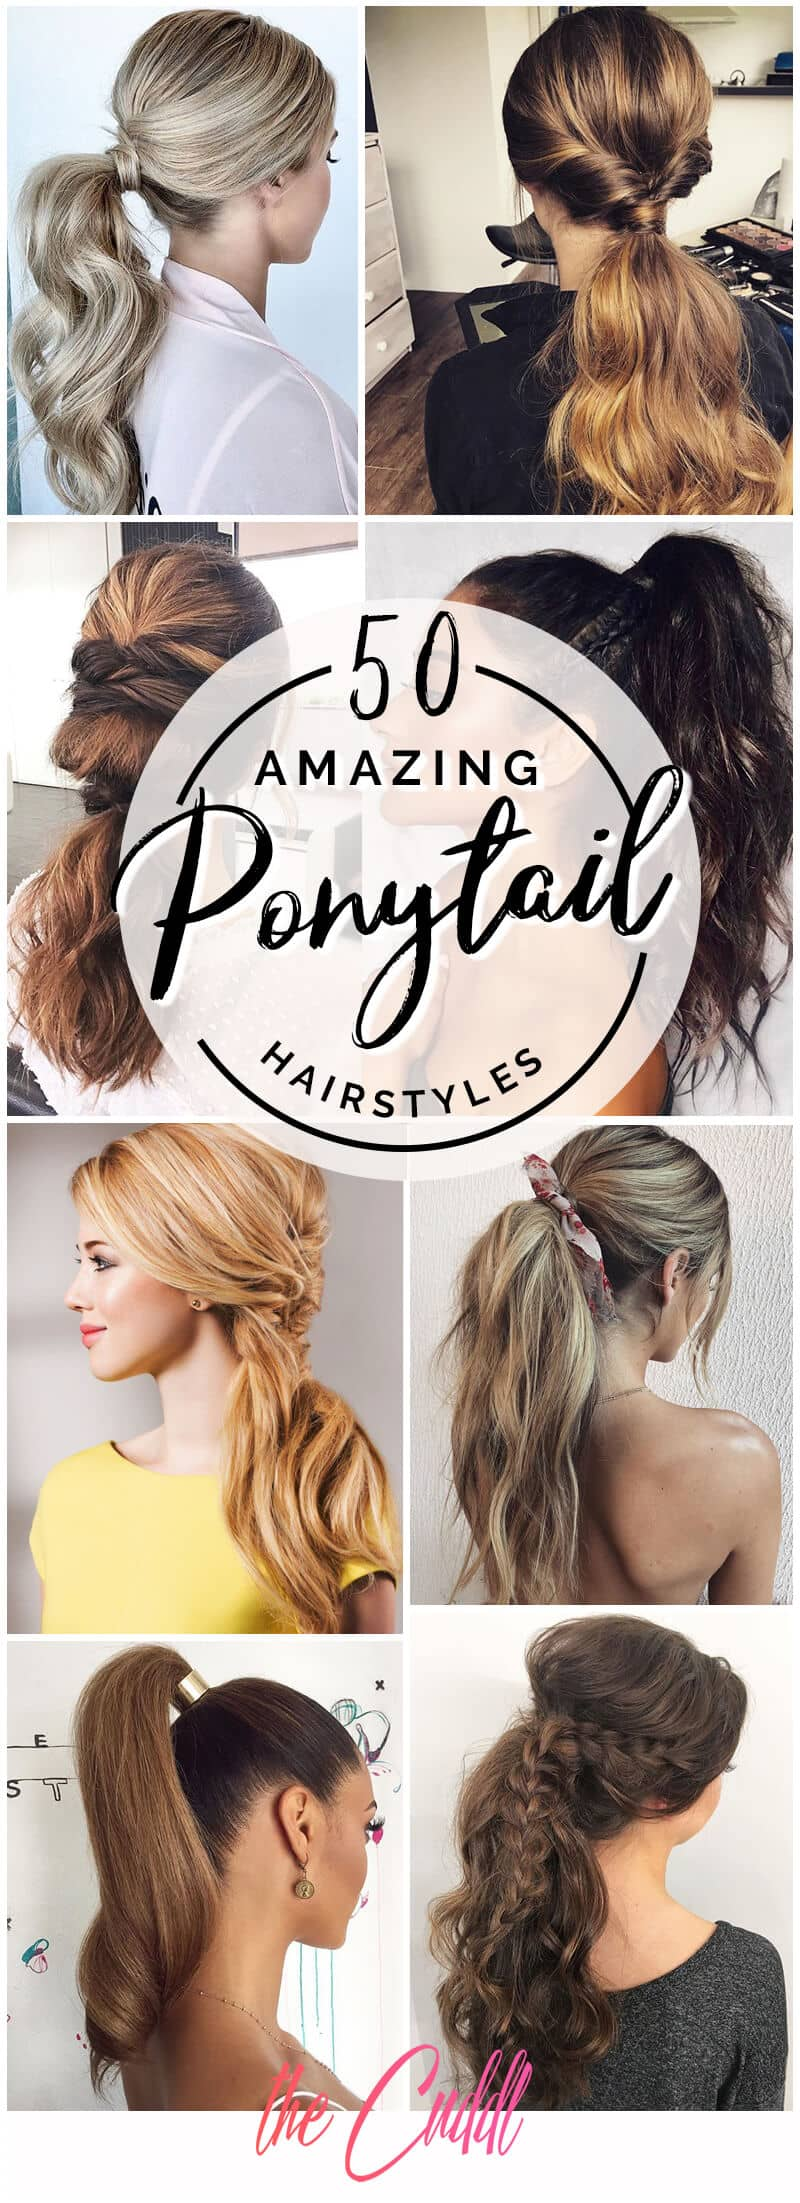 Surprising 50 Best Ponytail Hairstyles To Update Your Updo In 2020 Schematic Wiring Diagrams Phreekkolirunnerswayorg